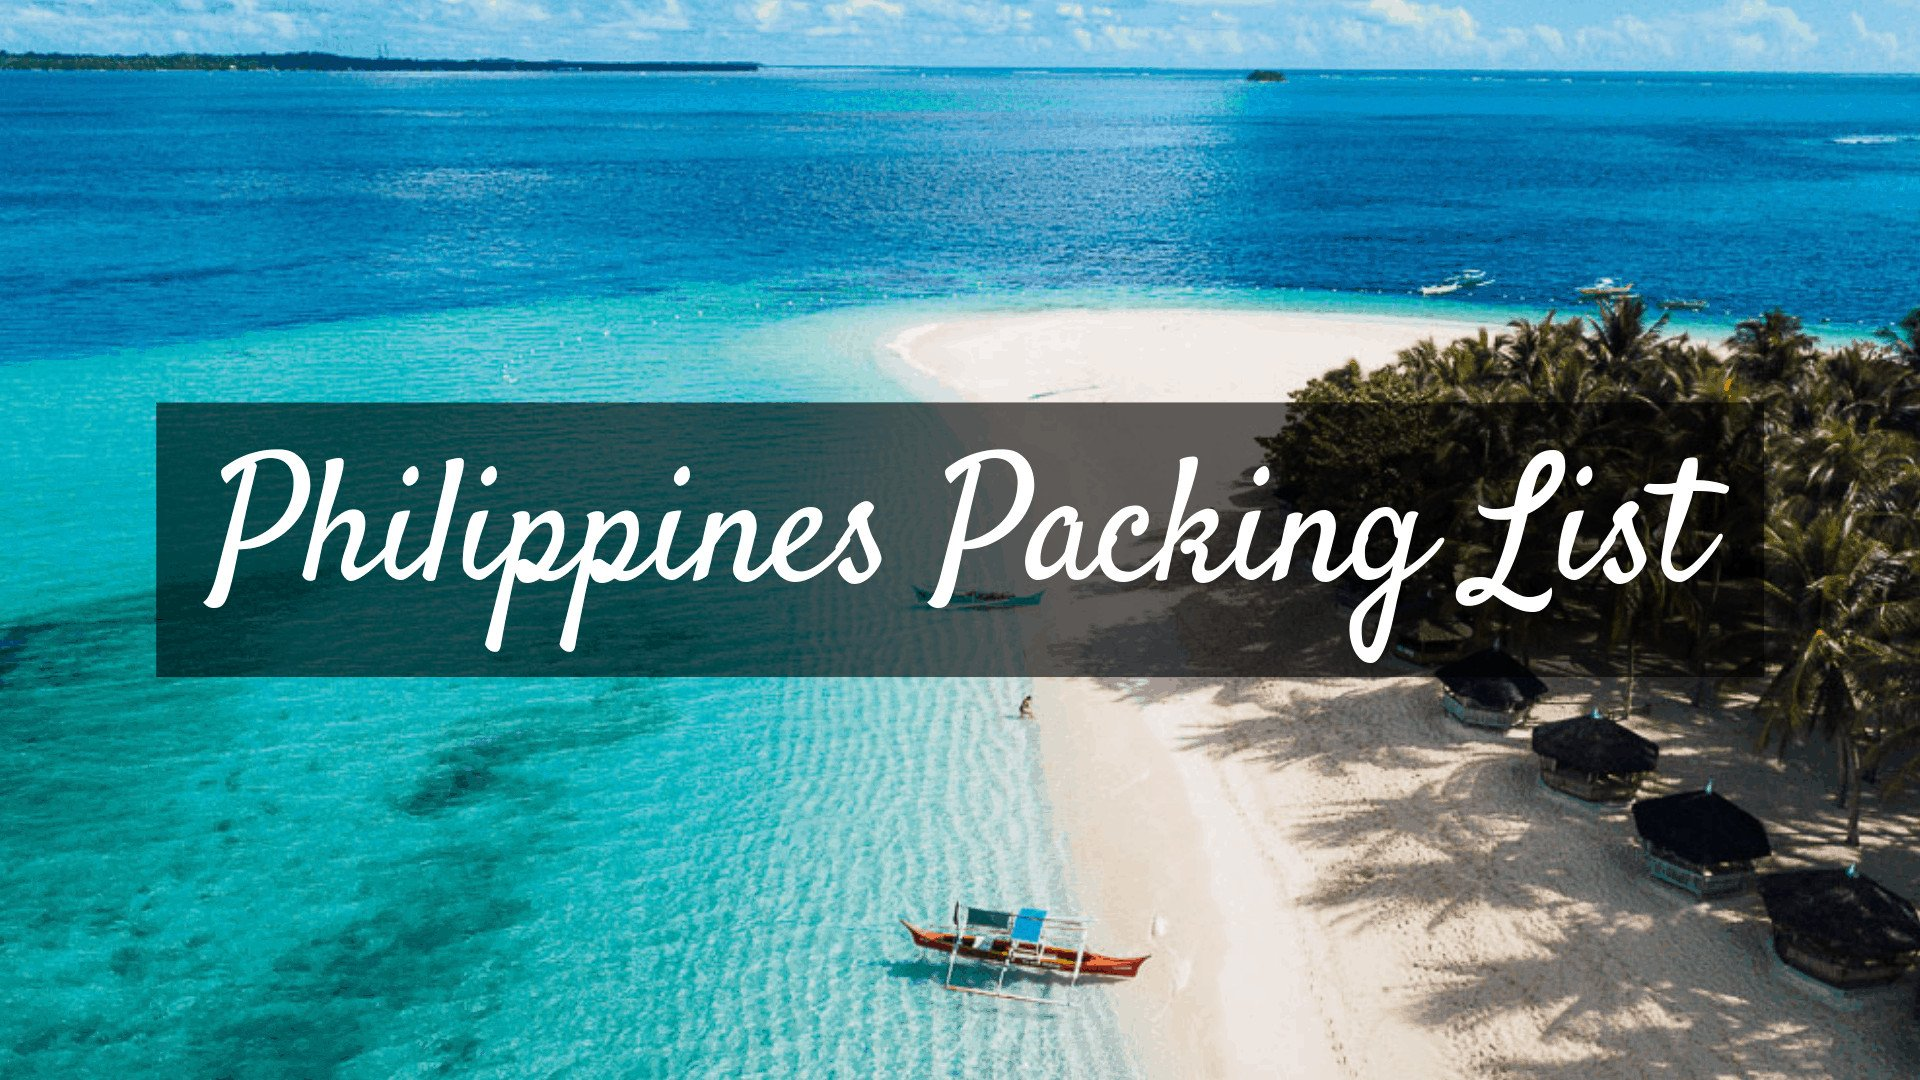 philippines Packing List 1